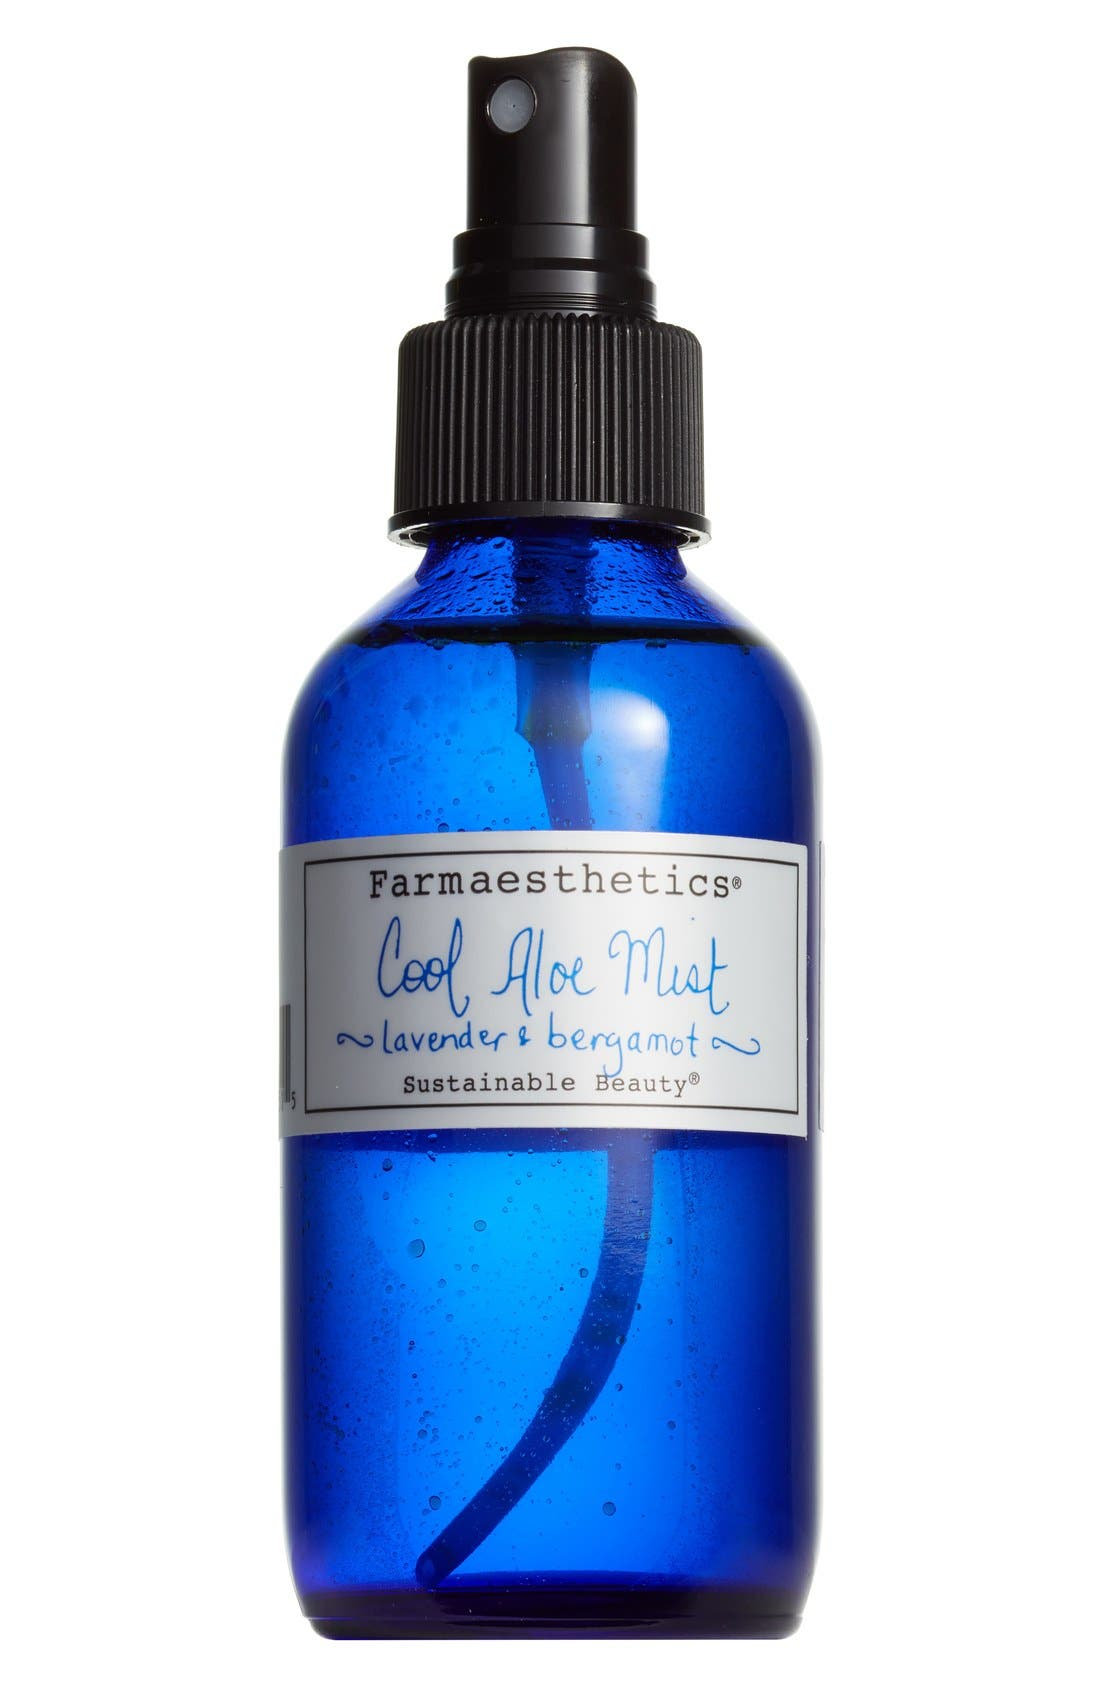 Farmaesthetics Cool Aloe Mist